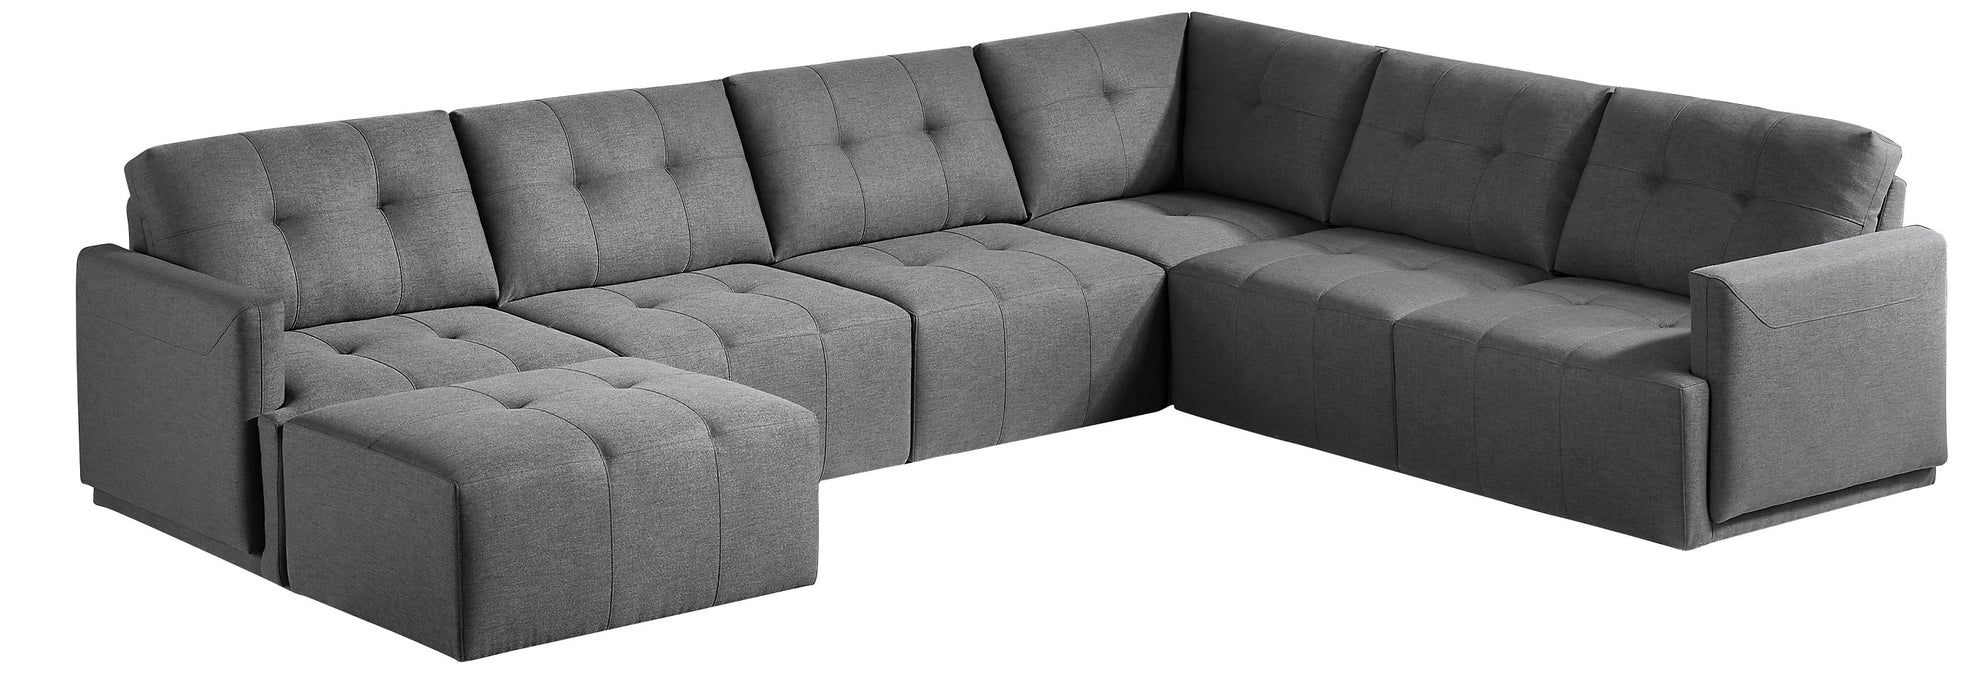 New Classic Furniture | Living Sectional in New Jersey, NJ 6398